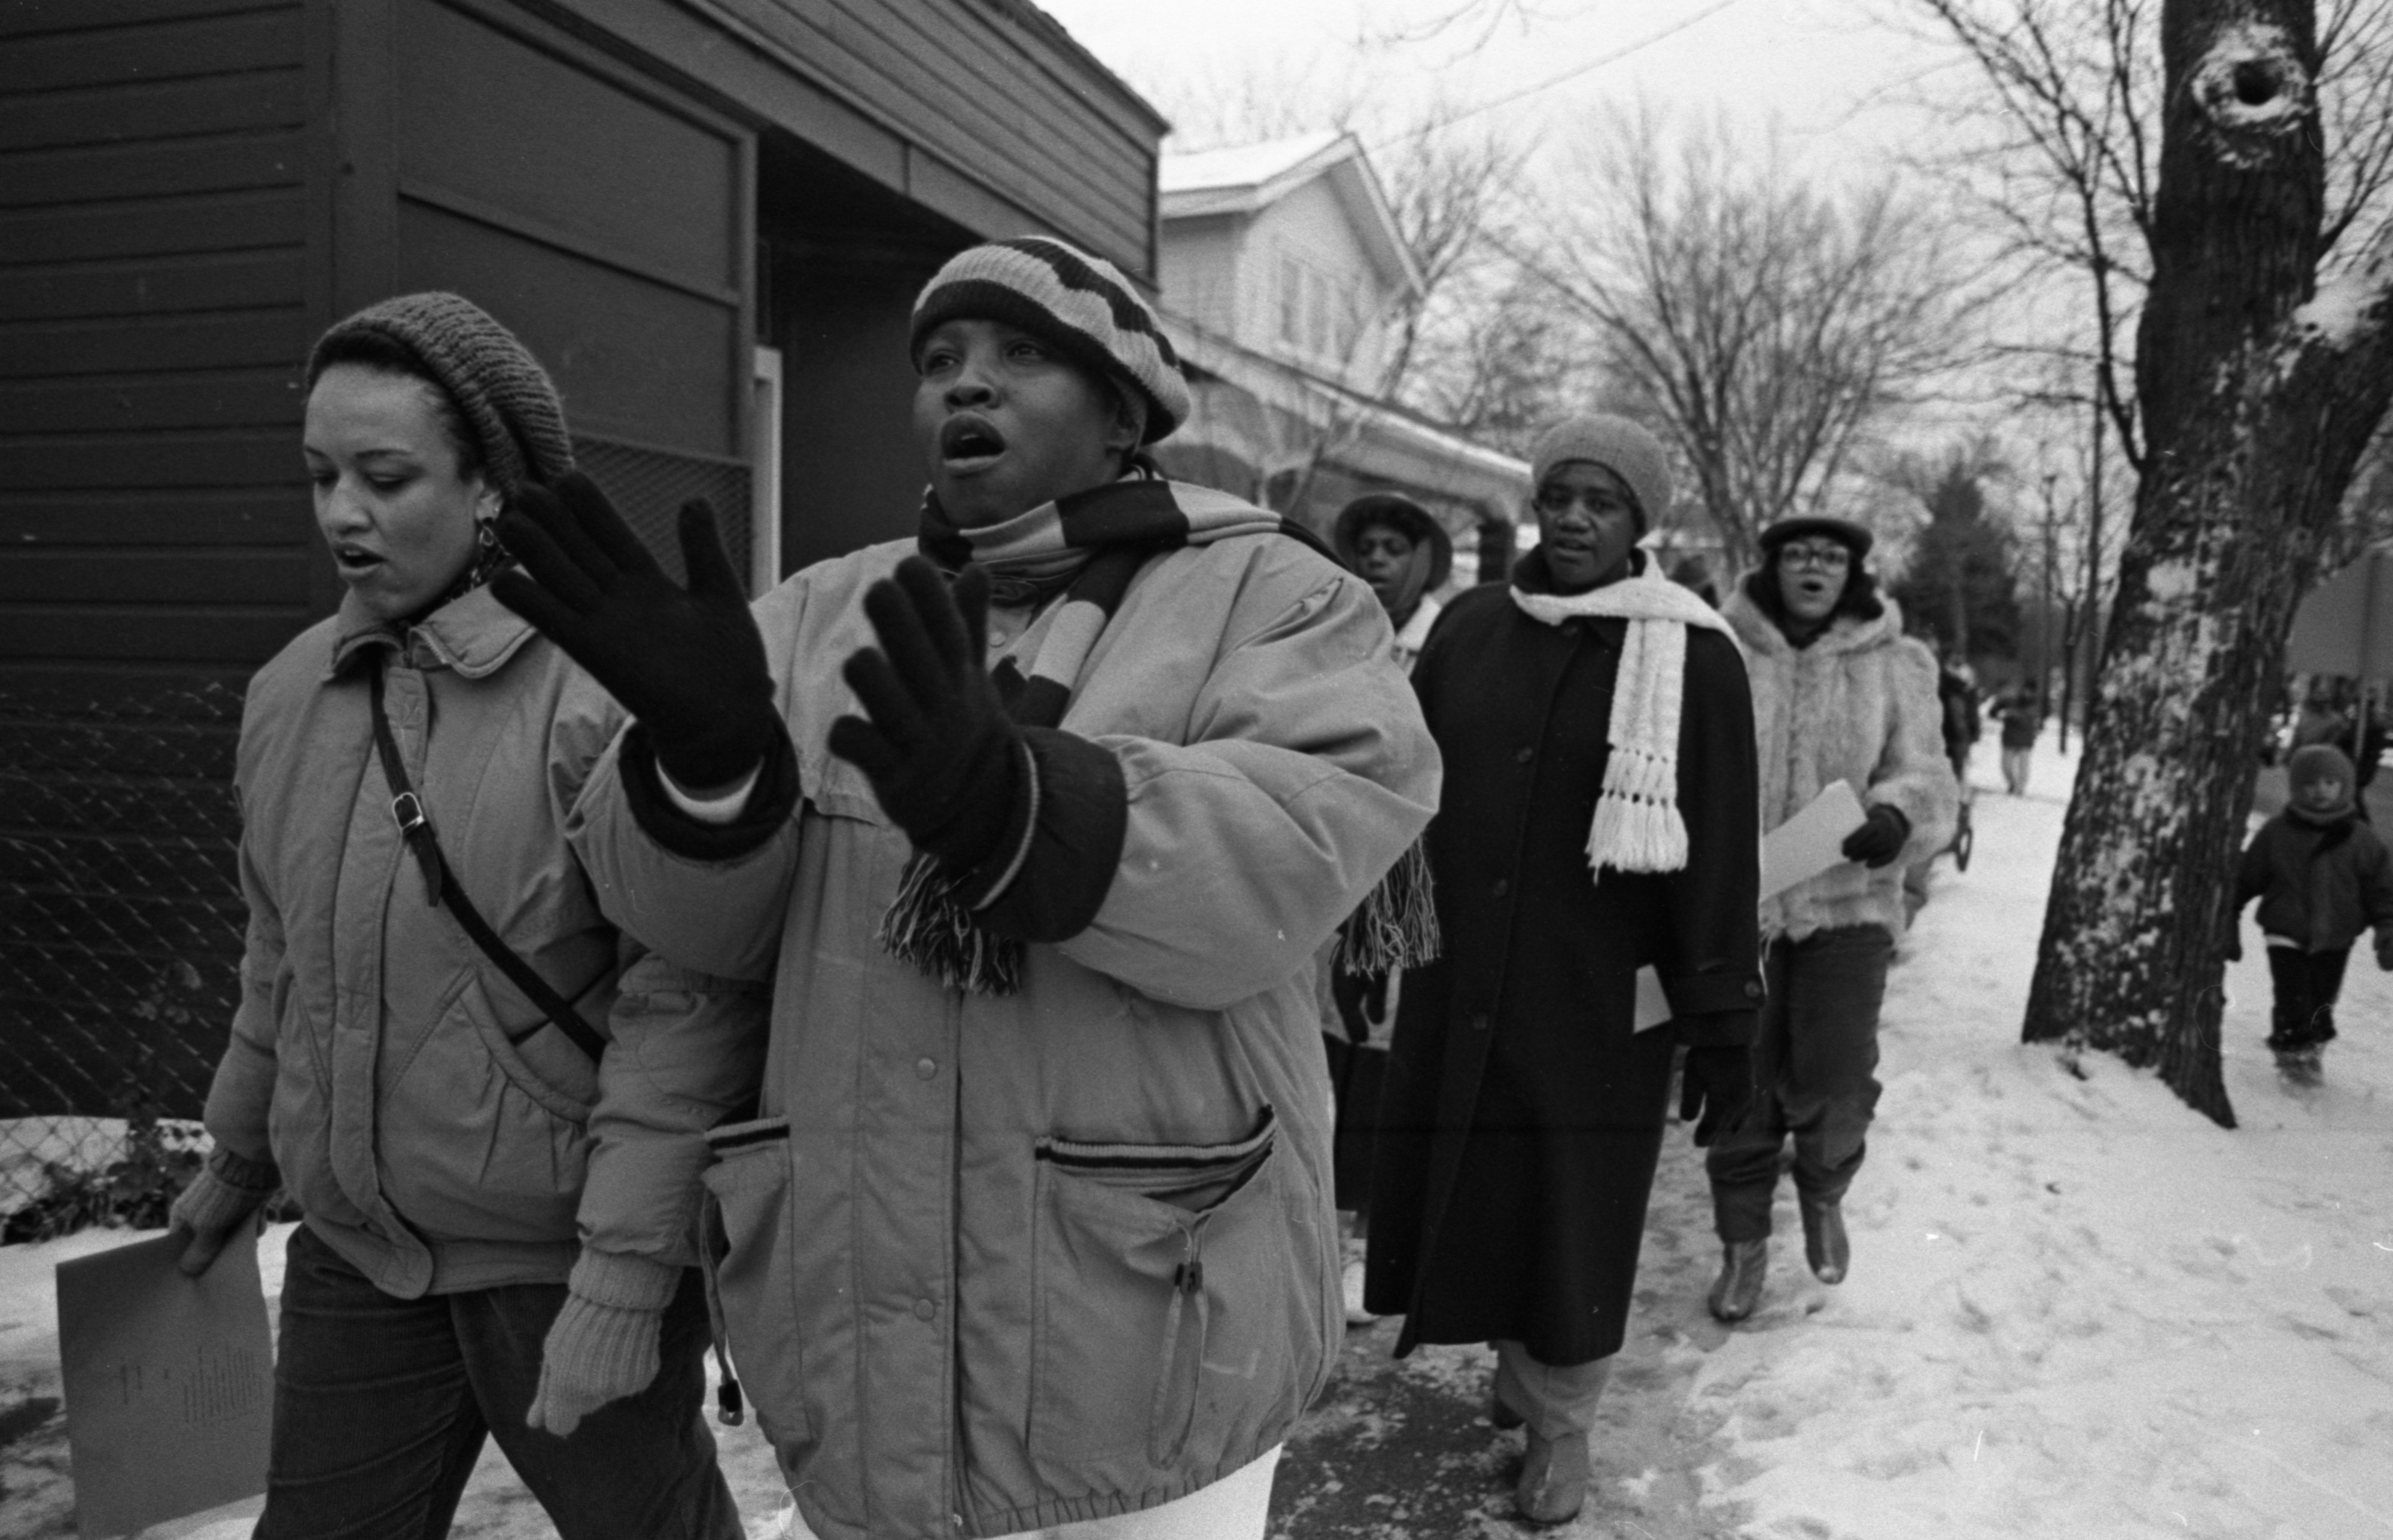 Second Baptist Church Annual Unity March To Honor Dr. Martin Luther King Jr., January 1991 image